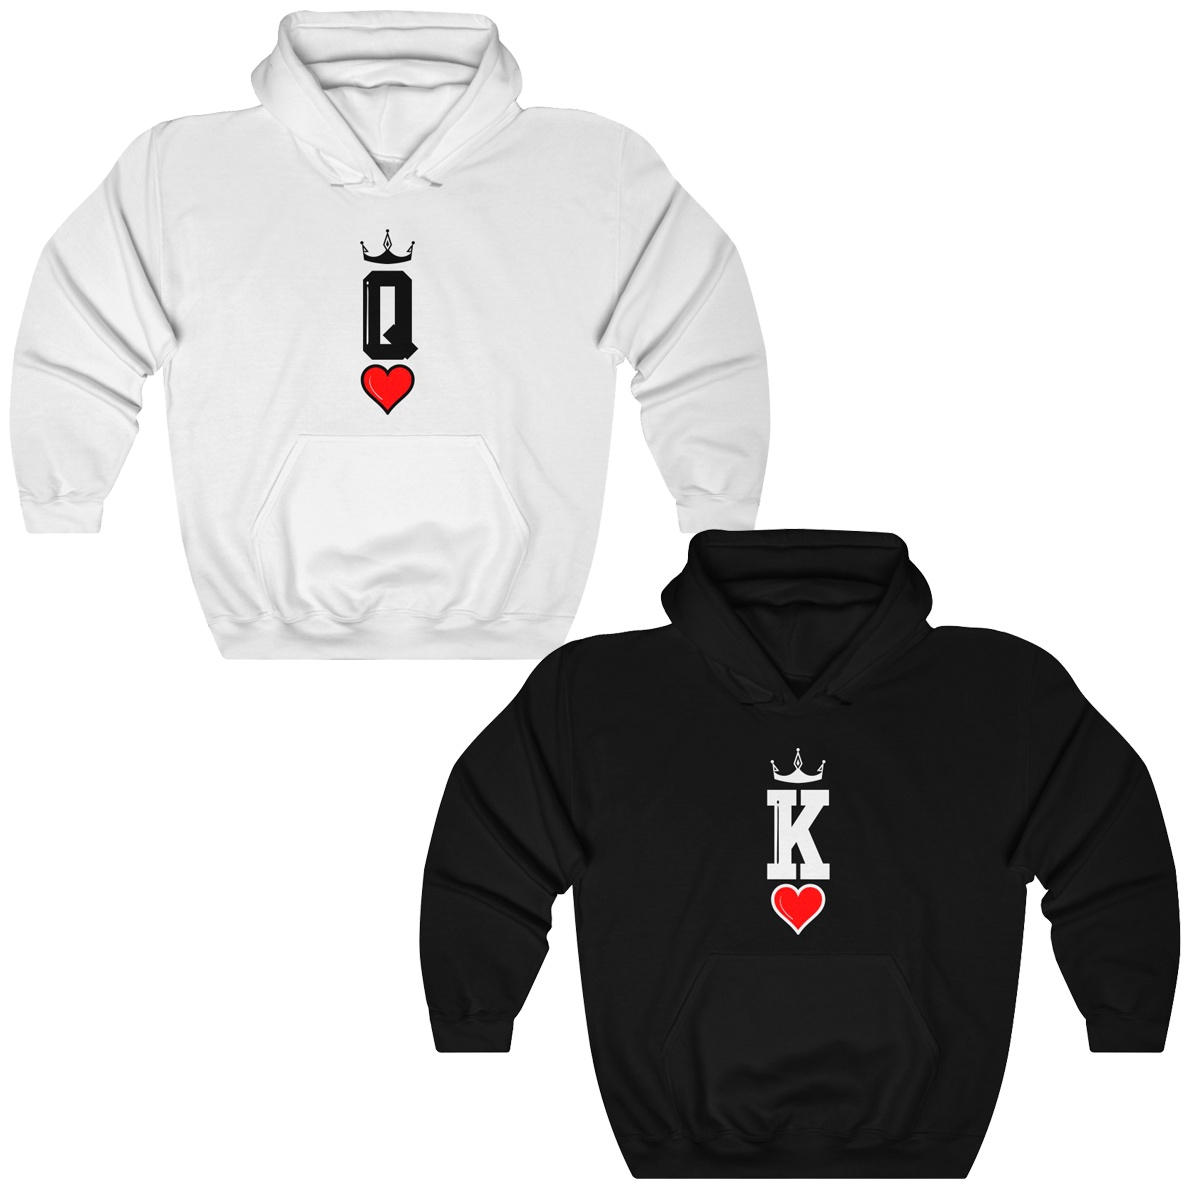 Queen & King Card Couples Hoodies